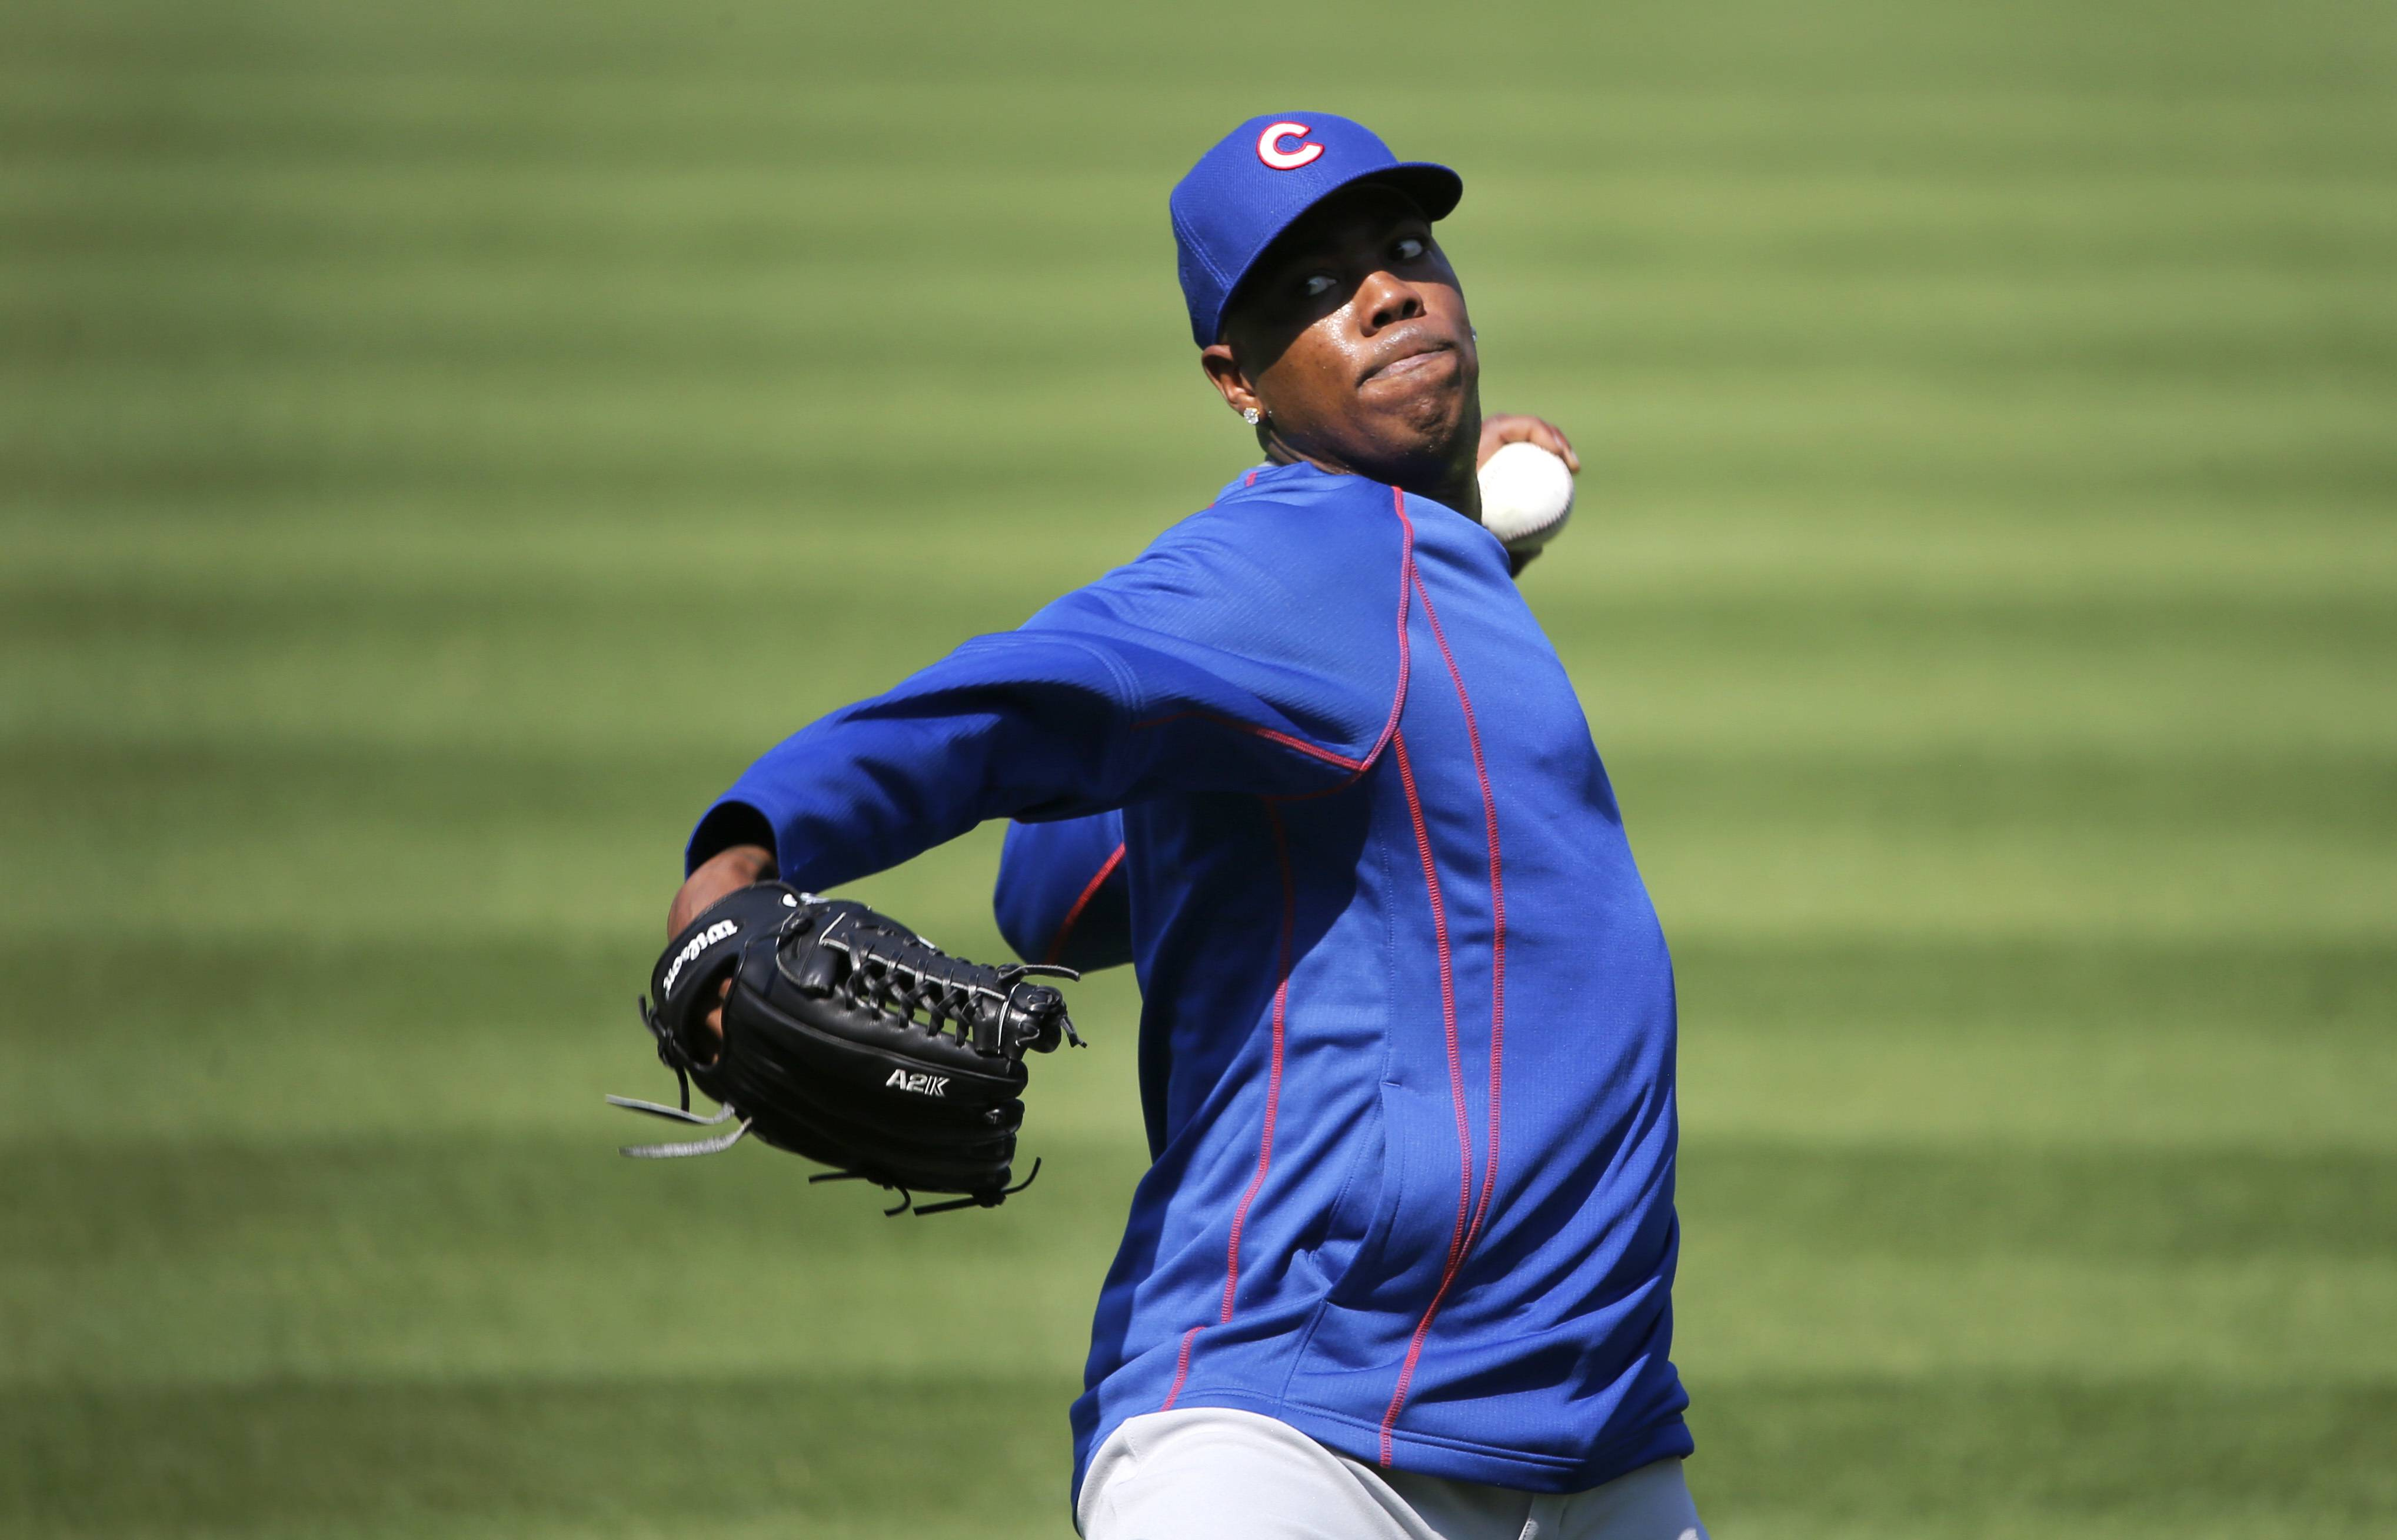 Chicago Cubs reliever Aroldis Chapman works out before a baseball game between the Cubs and Chicago White Sox Tuesday, July 26, 2016, in Chicago. (AP Photo/Charles Rex Arbogast)